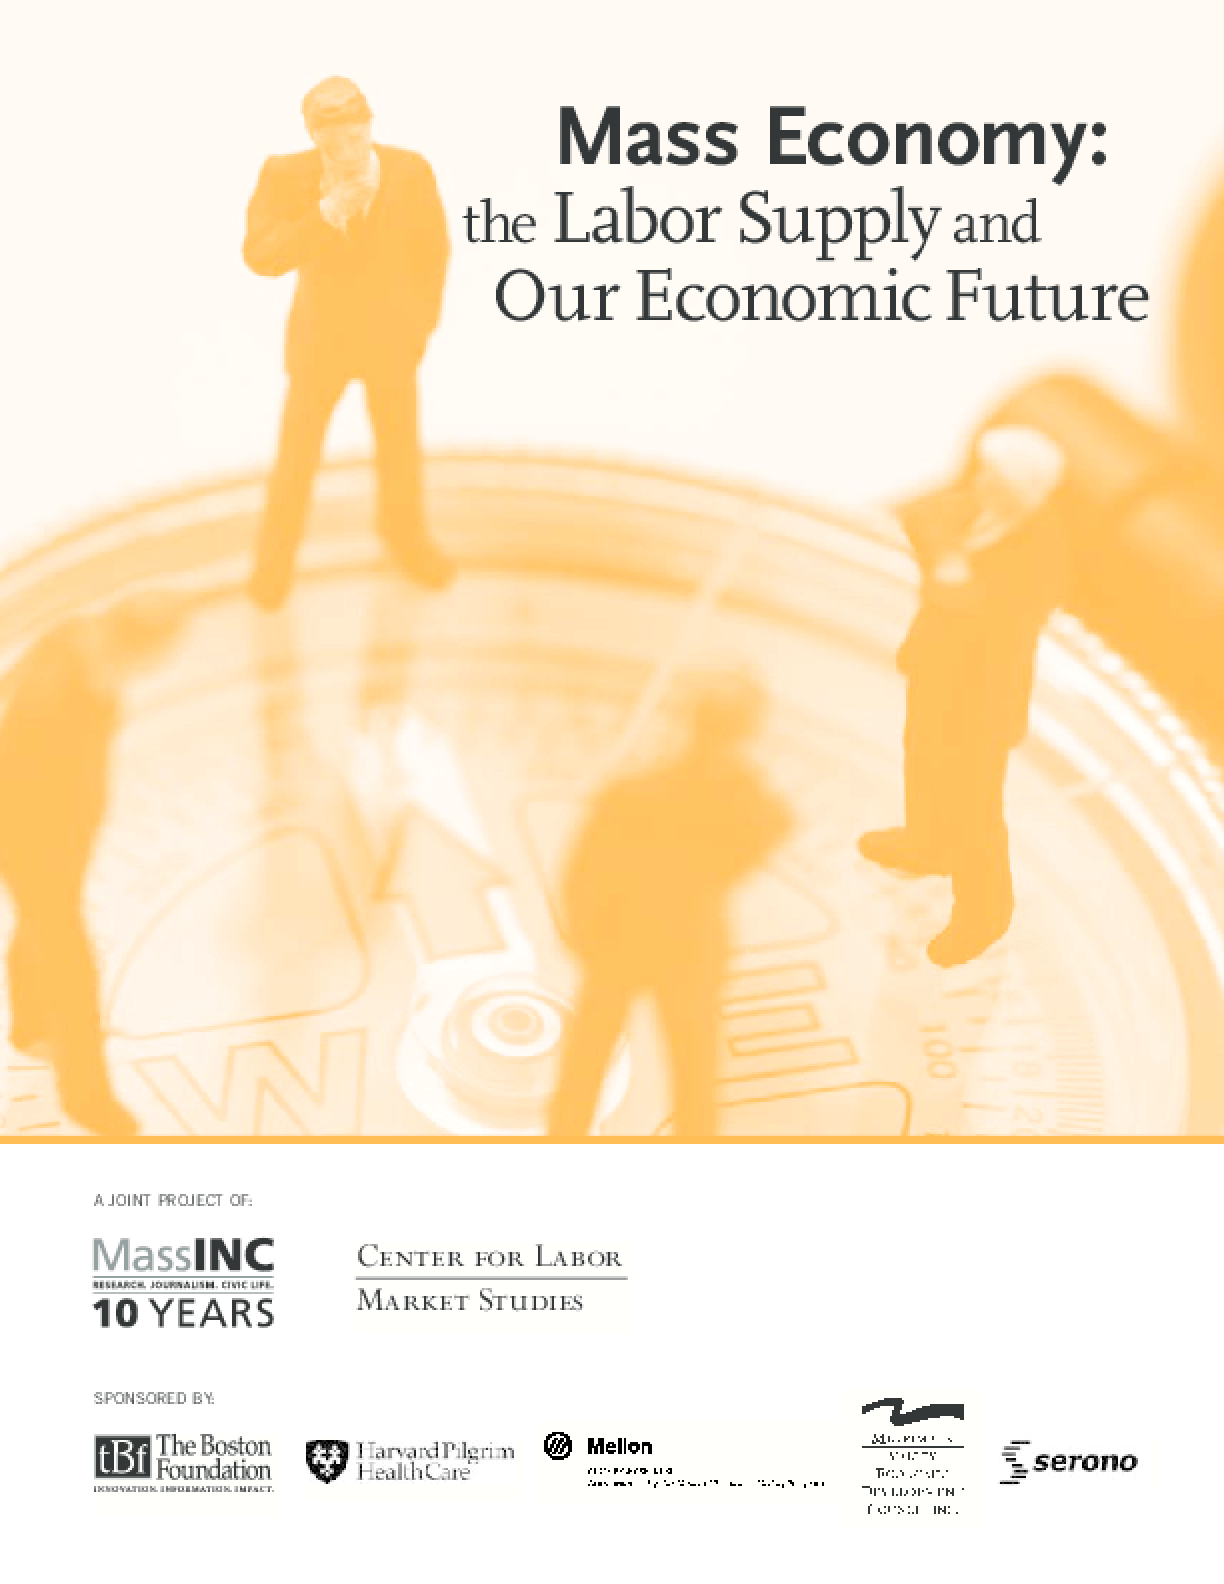 Mass Economy: The Labor Supply and Our Economic Future